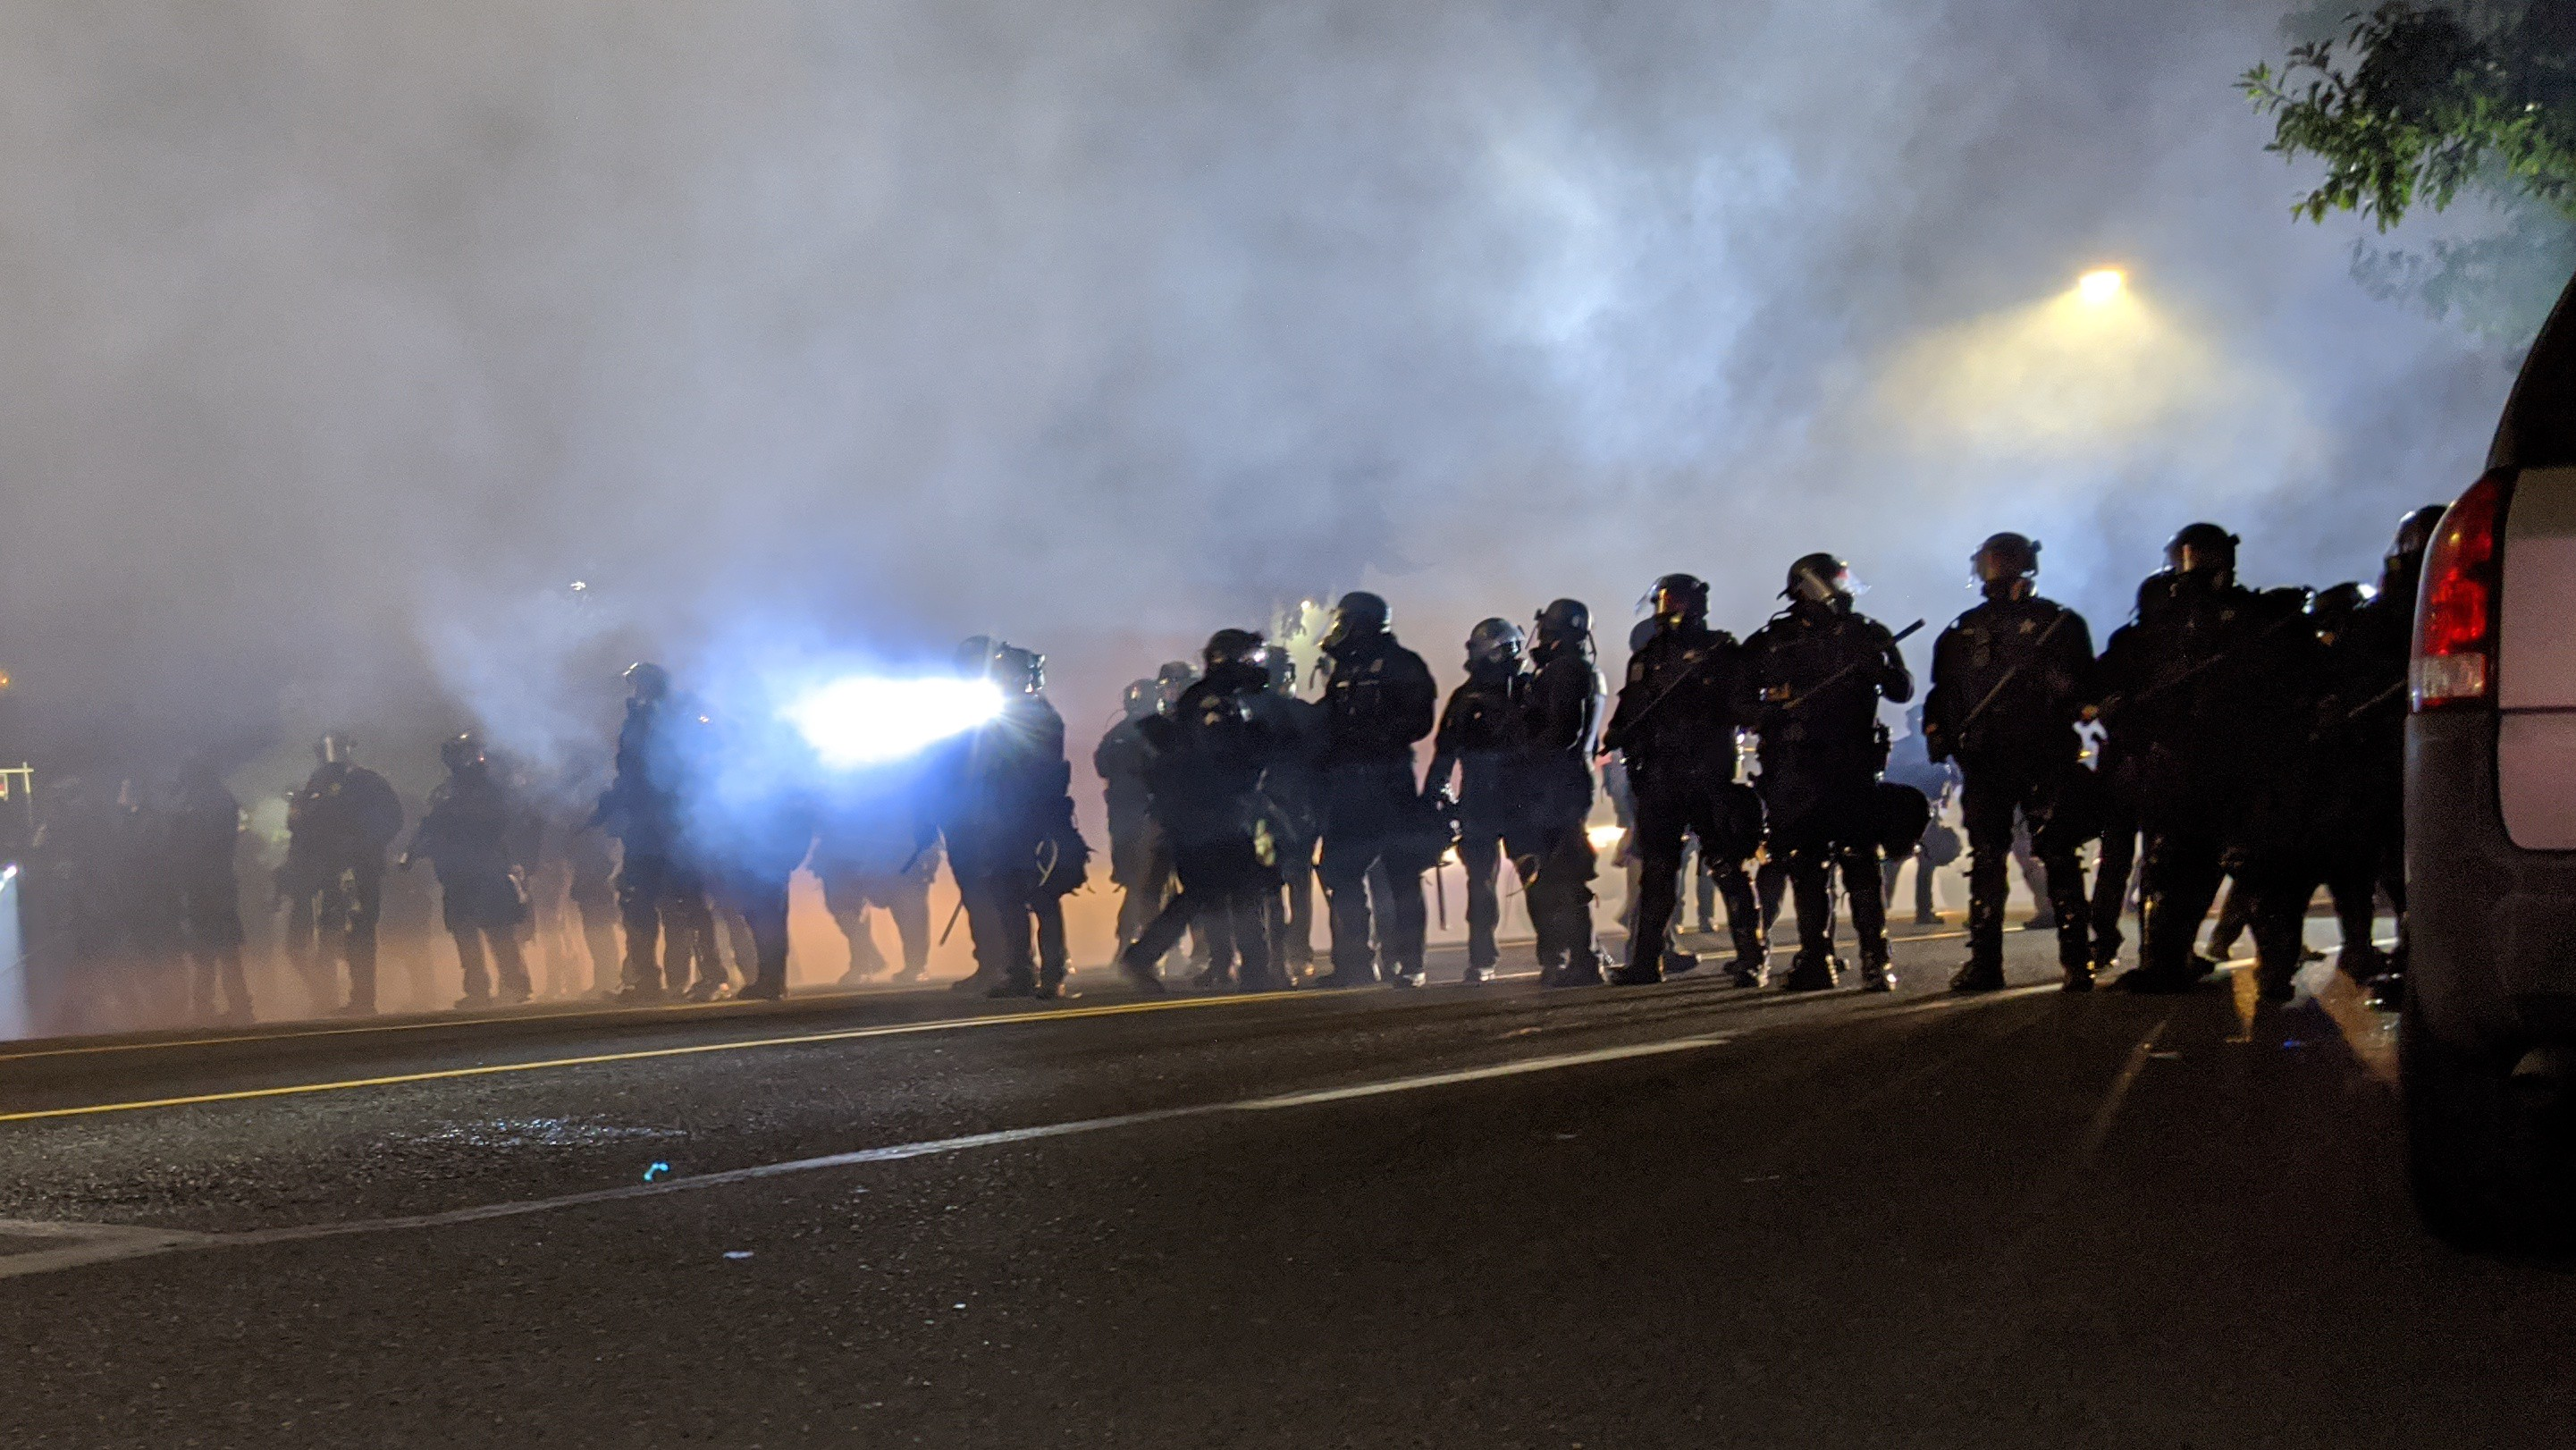 A line of police officers in riot gear standing in clouds of tear gas. They wear gas masks and carry batons and weapons